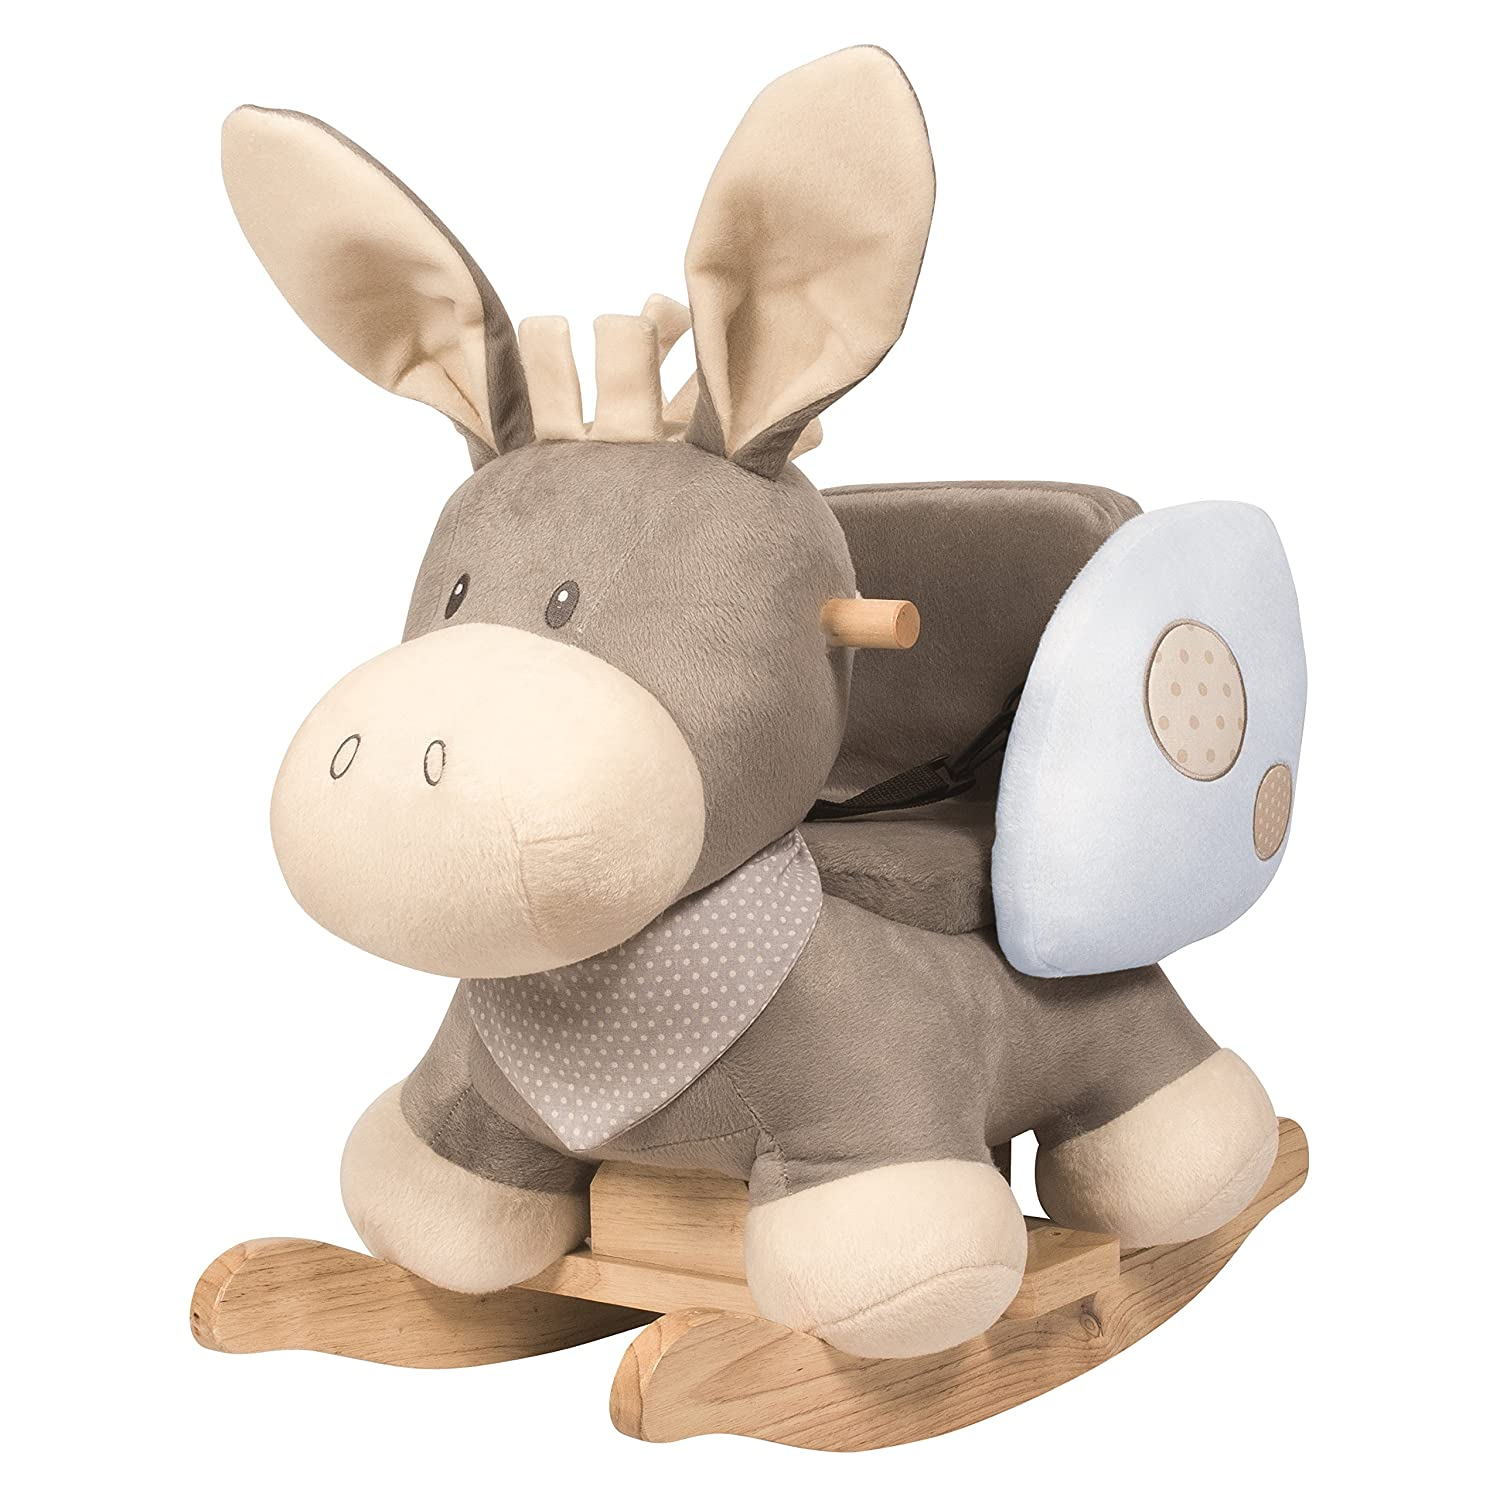 Donkey Rocker For 10 - 36 months